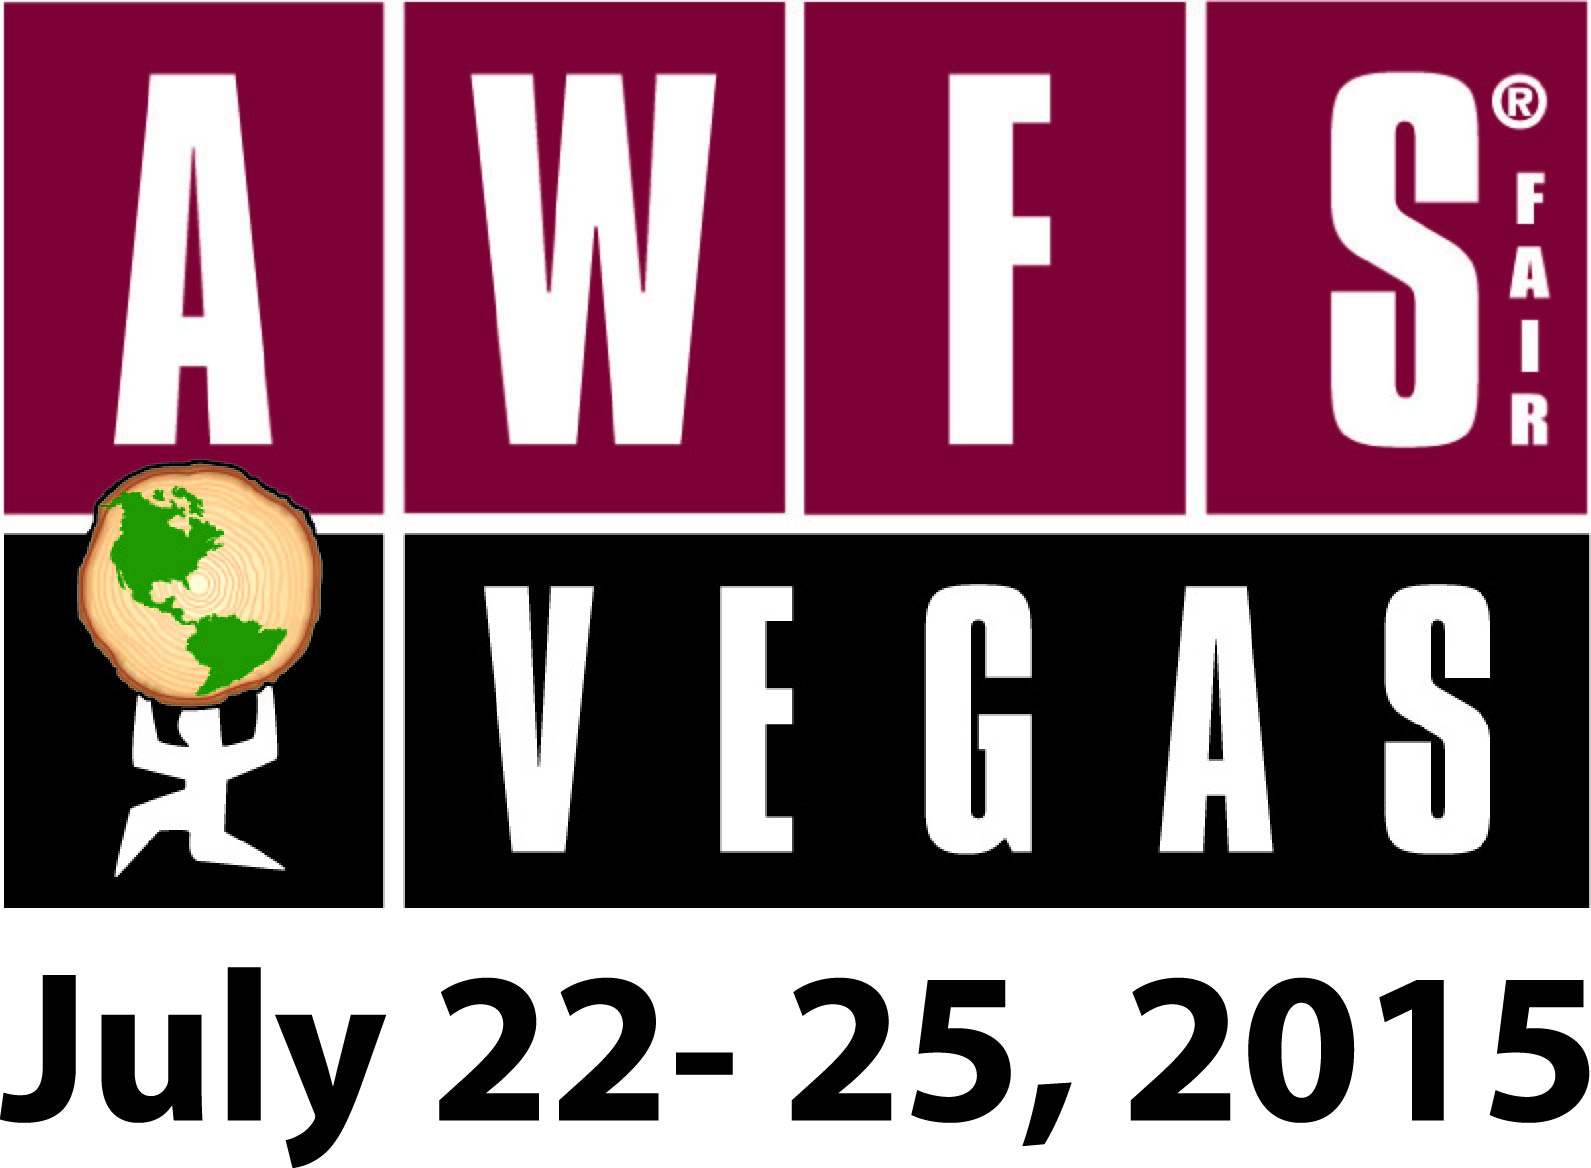 Worldwide Solids attends the 2015 AWFS